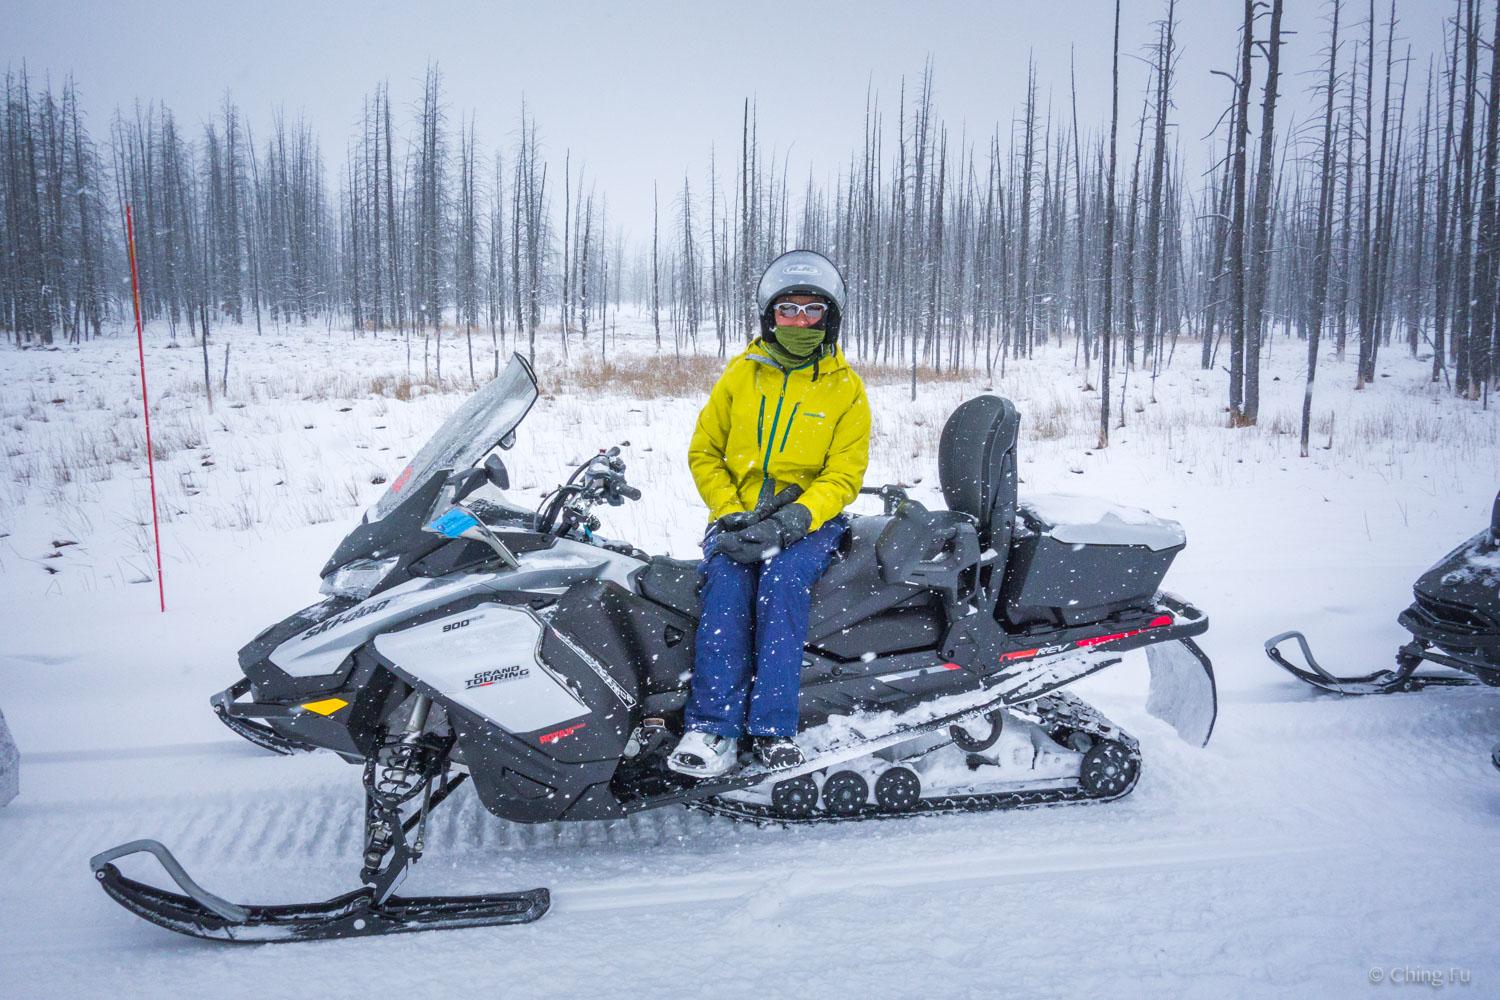 Ching on a snowmobile at Yellowstone National Park.